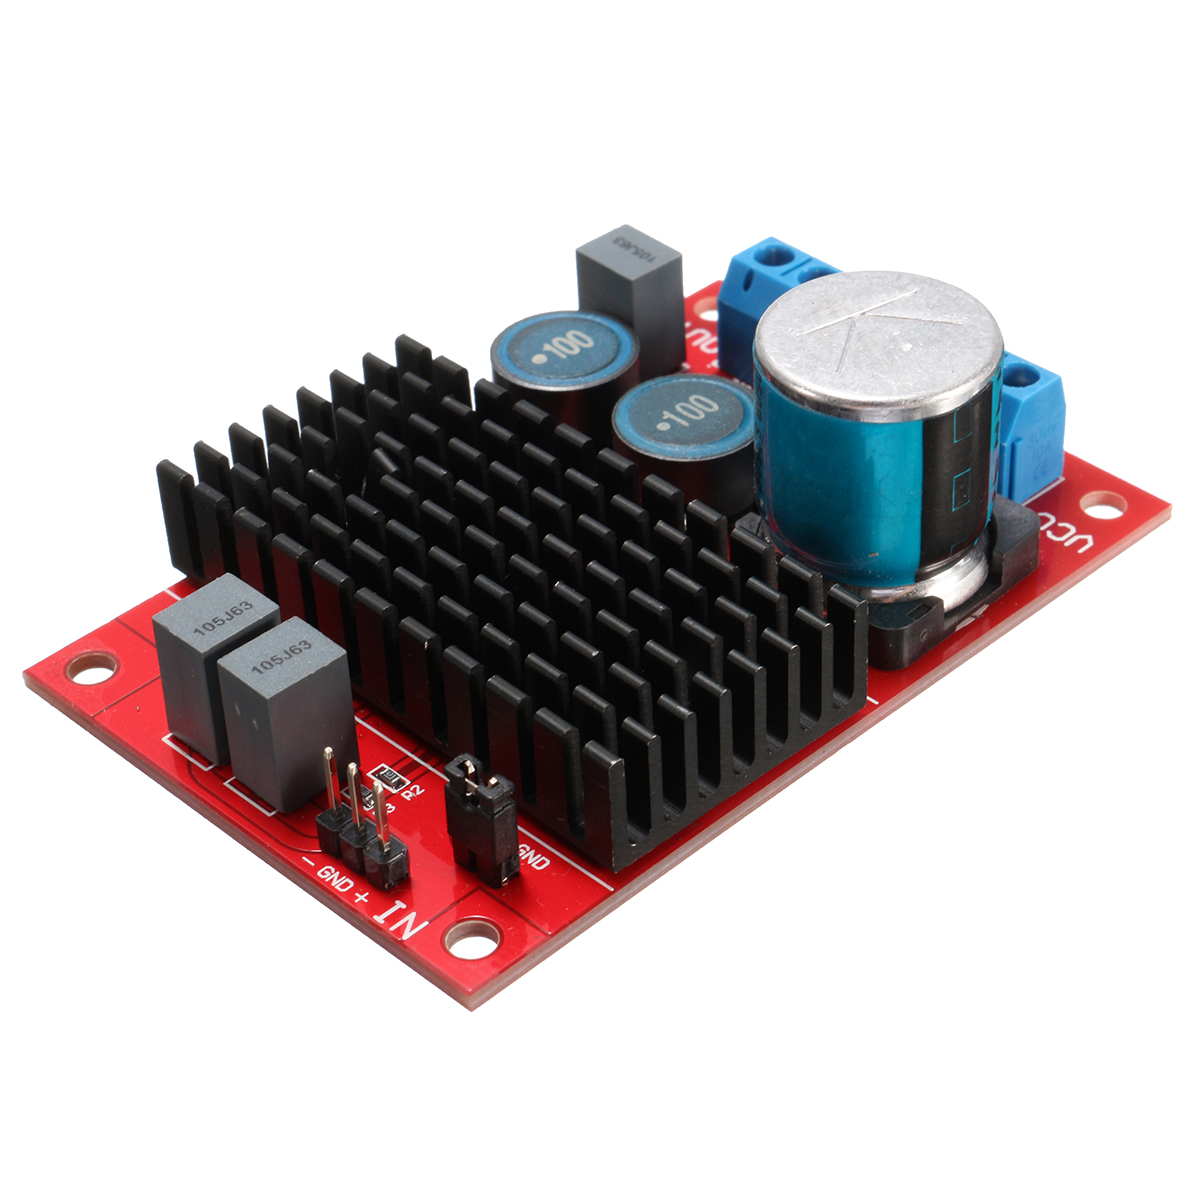 Buy DC 12V-24V 100W BTL Out TPA3116 Mono Channel Digital Power Audio Amplifier Board